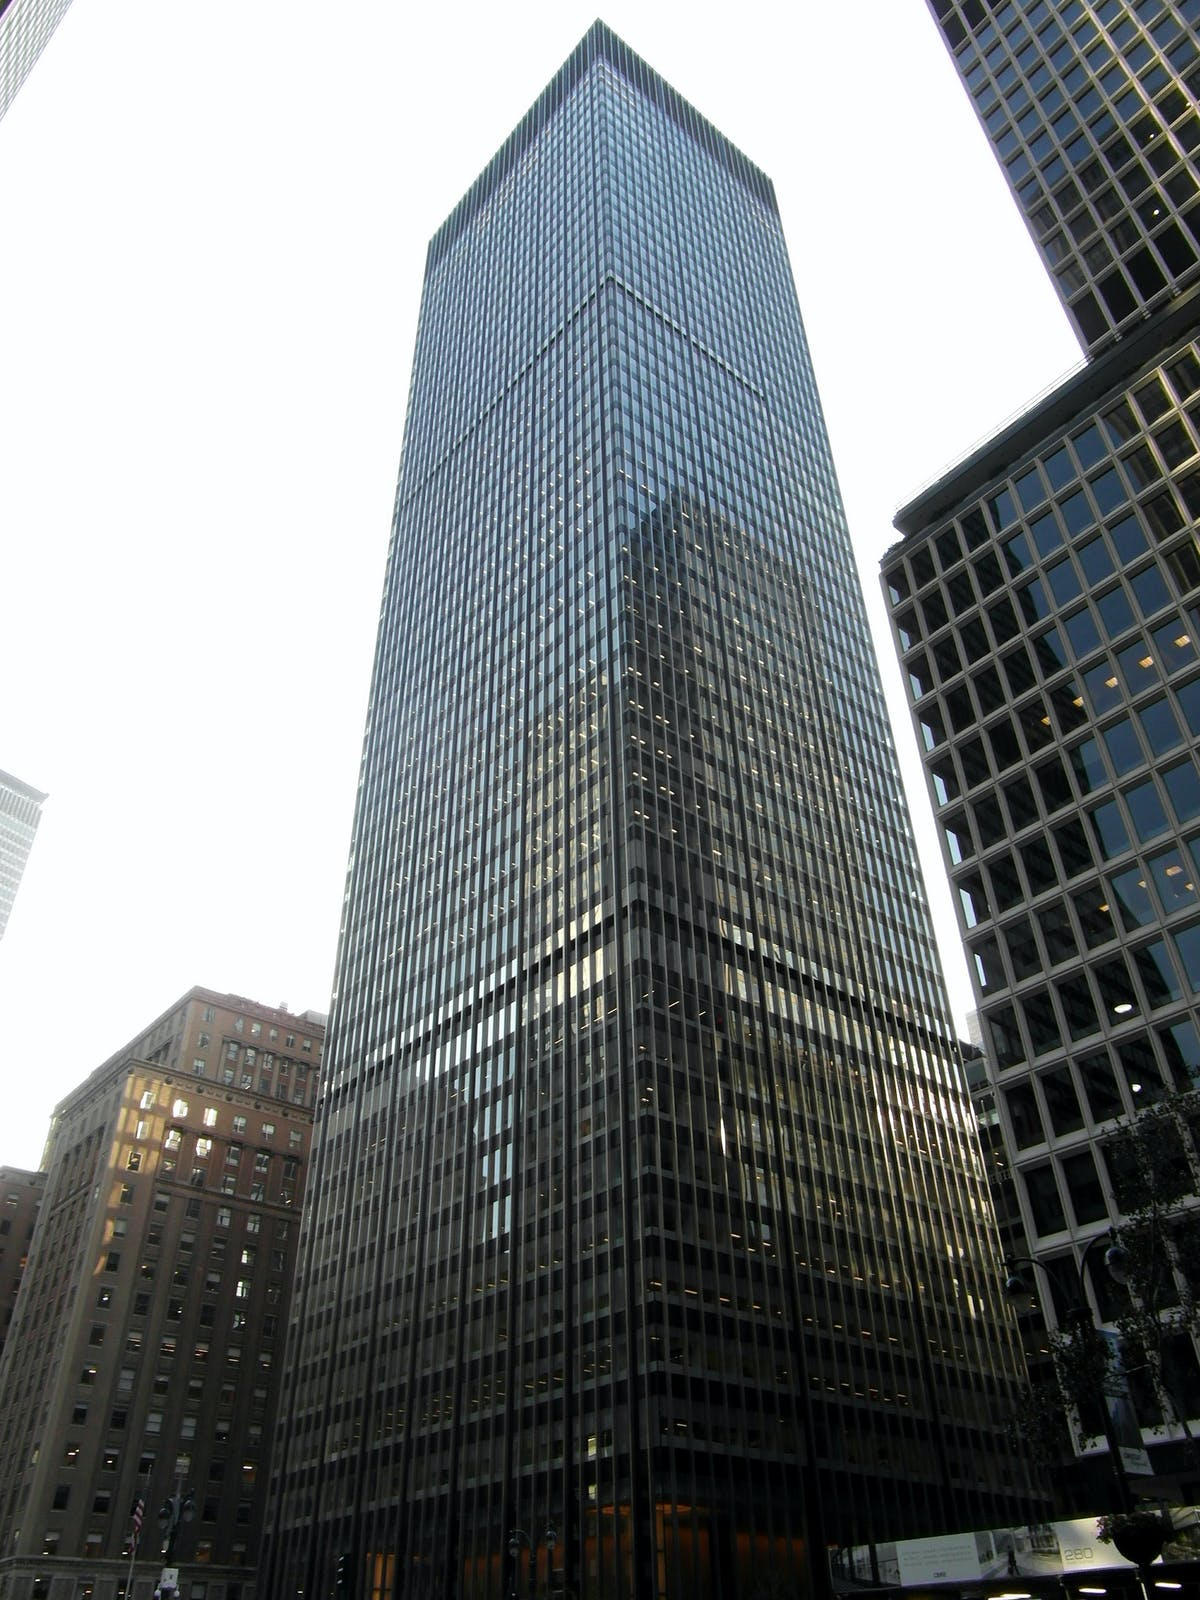 JPMorgan Chase HQ: permits filed for largest planned demolition in history